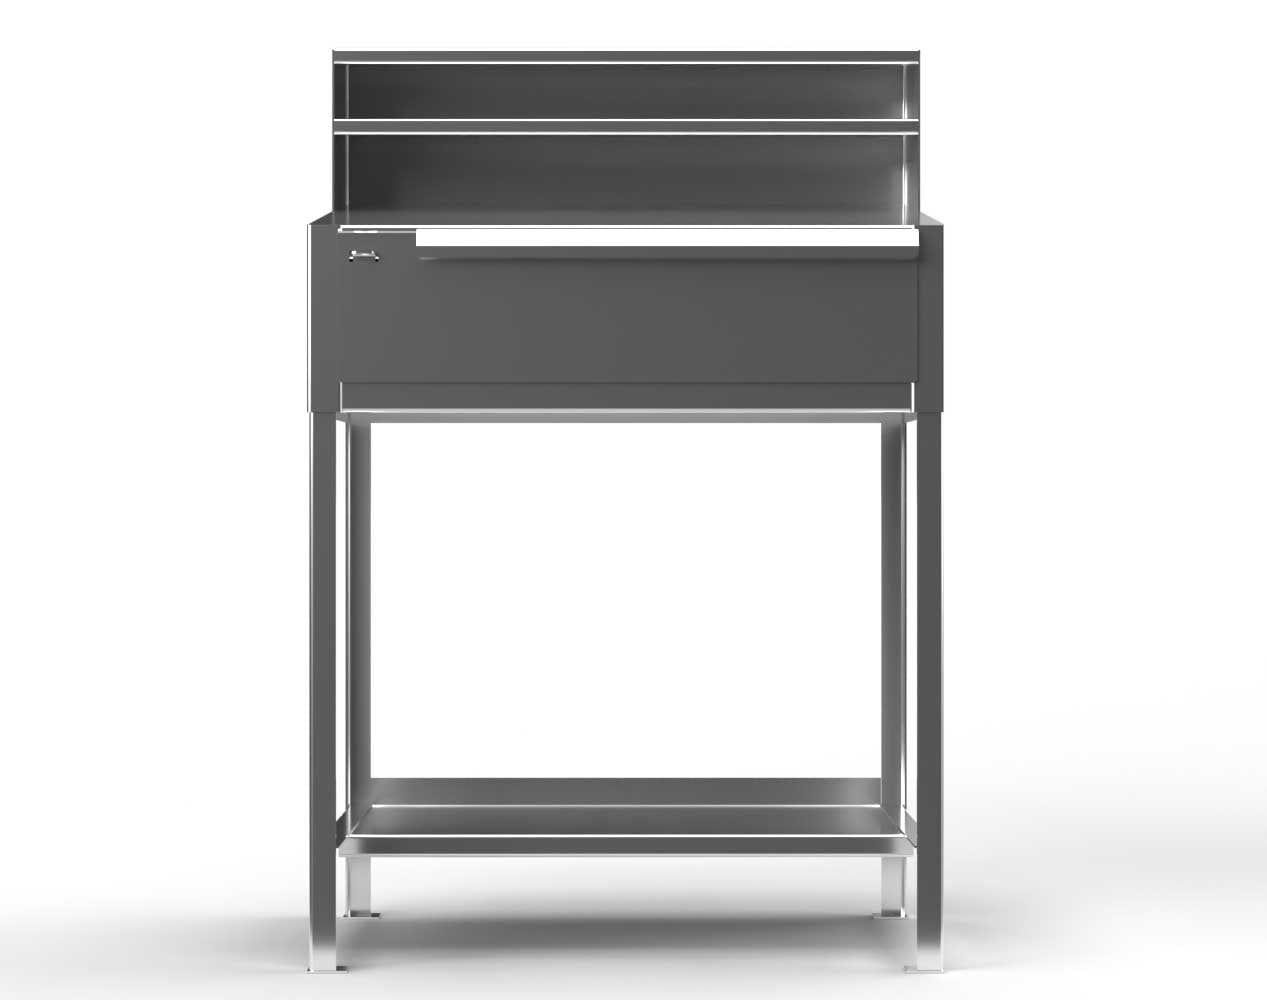 Extra Heavy Duty 12 GA Stainless Steel Shipping and Receiving Desk with 1 Drawer, 1 Shelf, Riser Shelf – 36 In. W x 28 In. D x 54 In. H